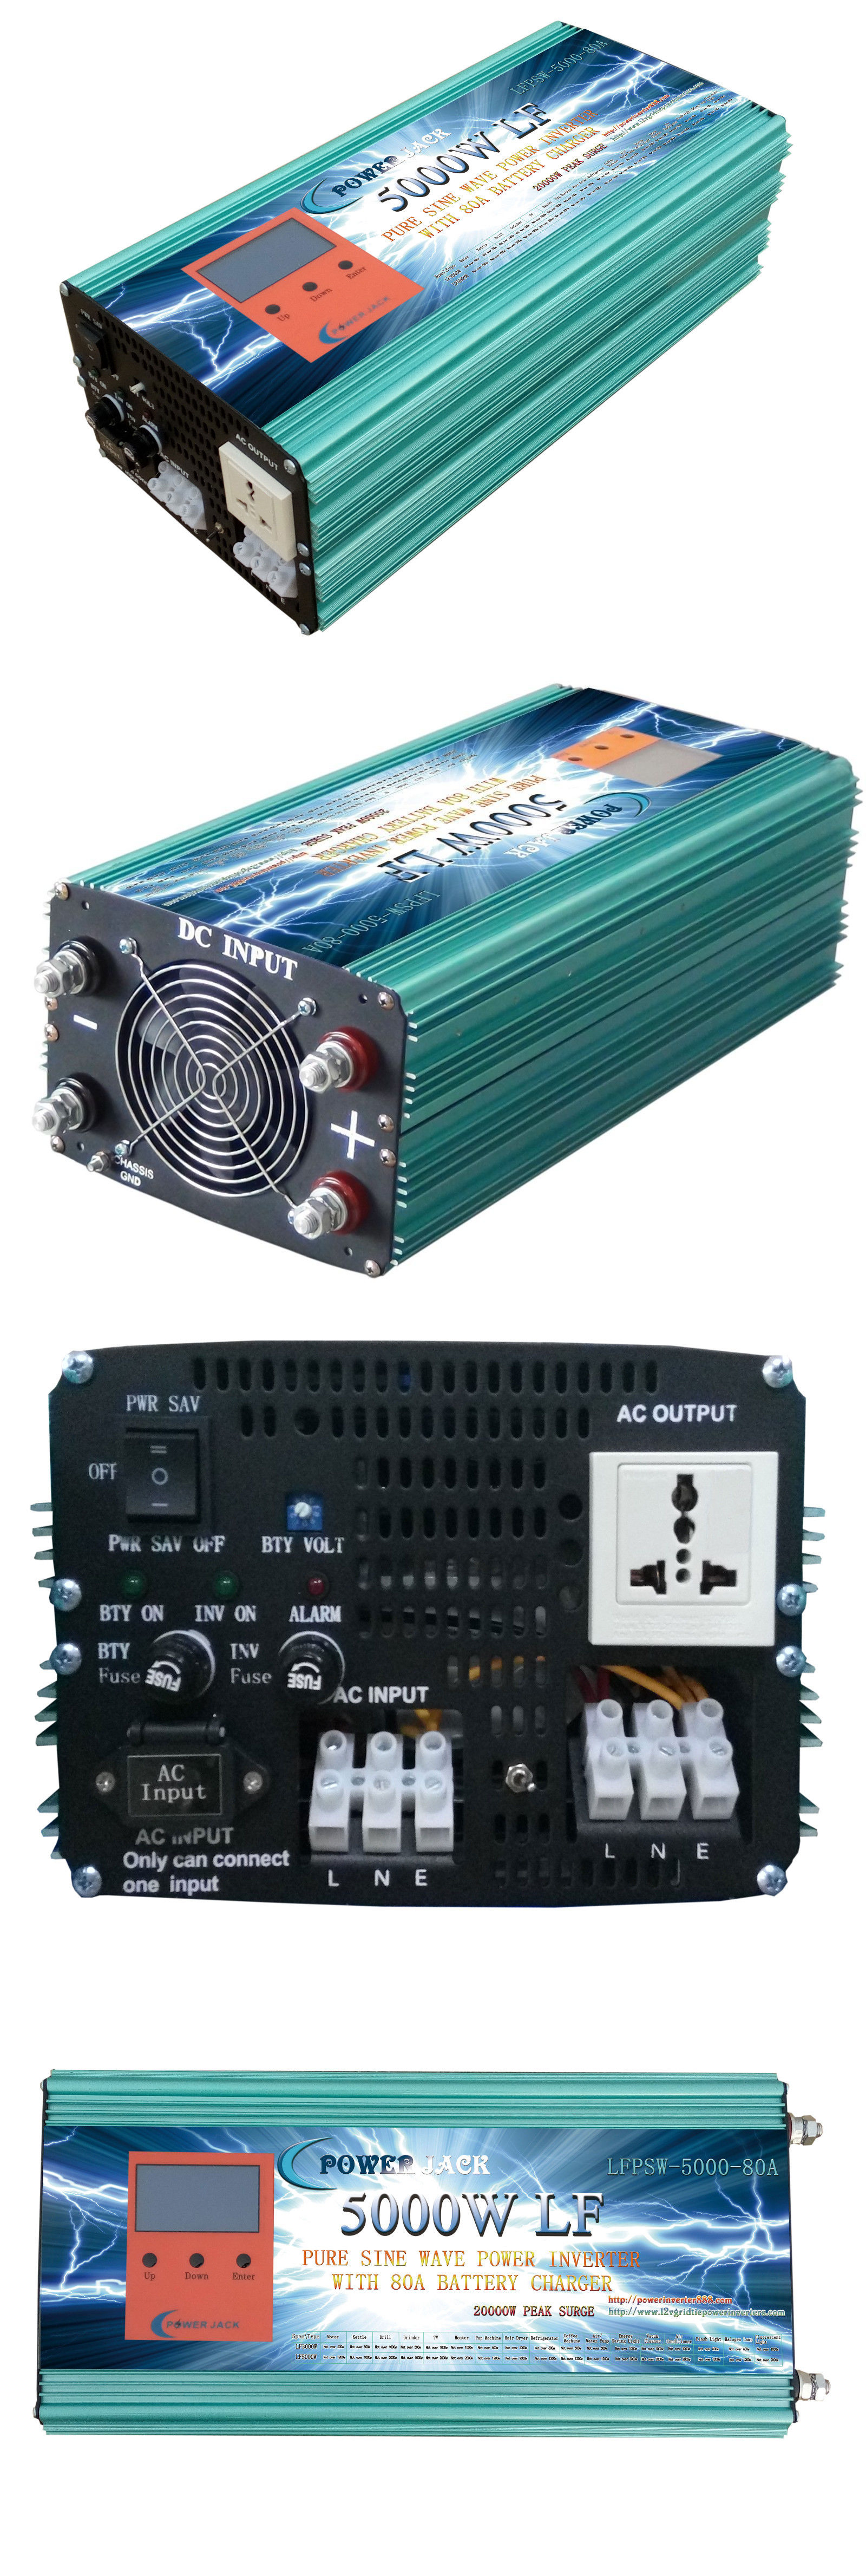 Power Inverters 5000w Lf Psw Solar Inverter Dc 24v Ac 500w Mosfet From 12v To 110v 220v Pure Sine Wave Tool